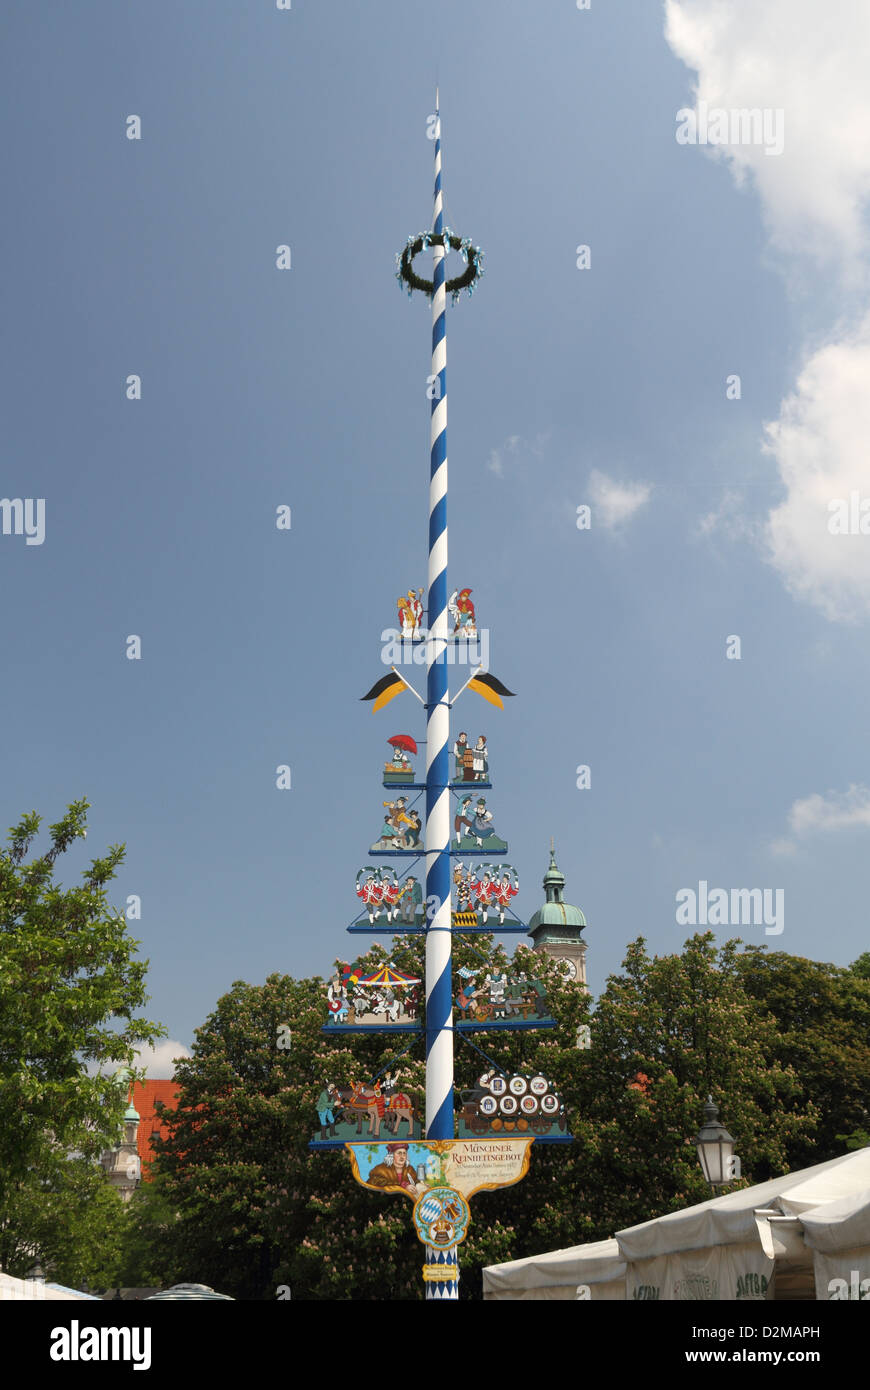 Munich market square 'maypole' - city sign showing local crafts and industries. - Stock Image